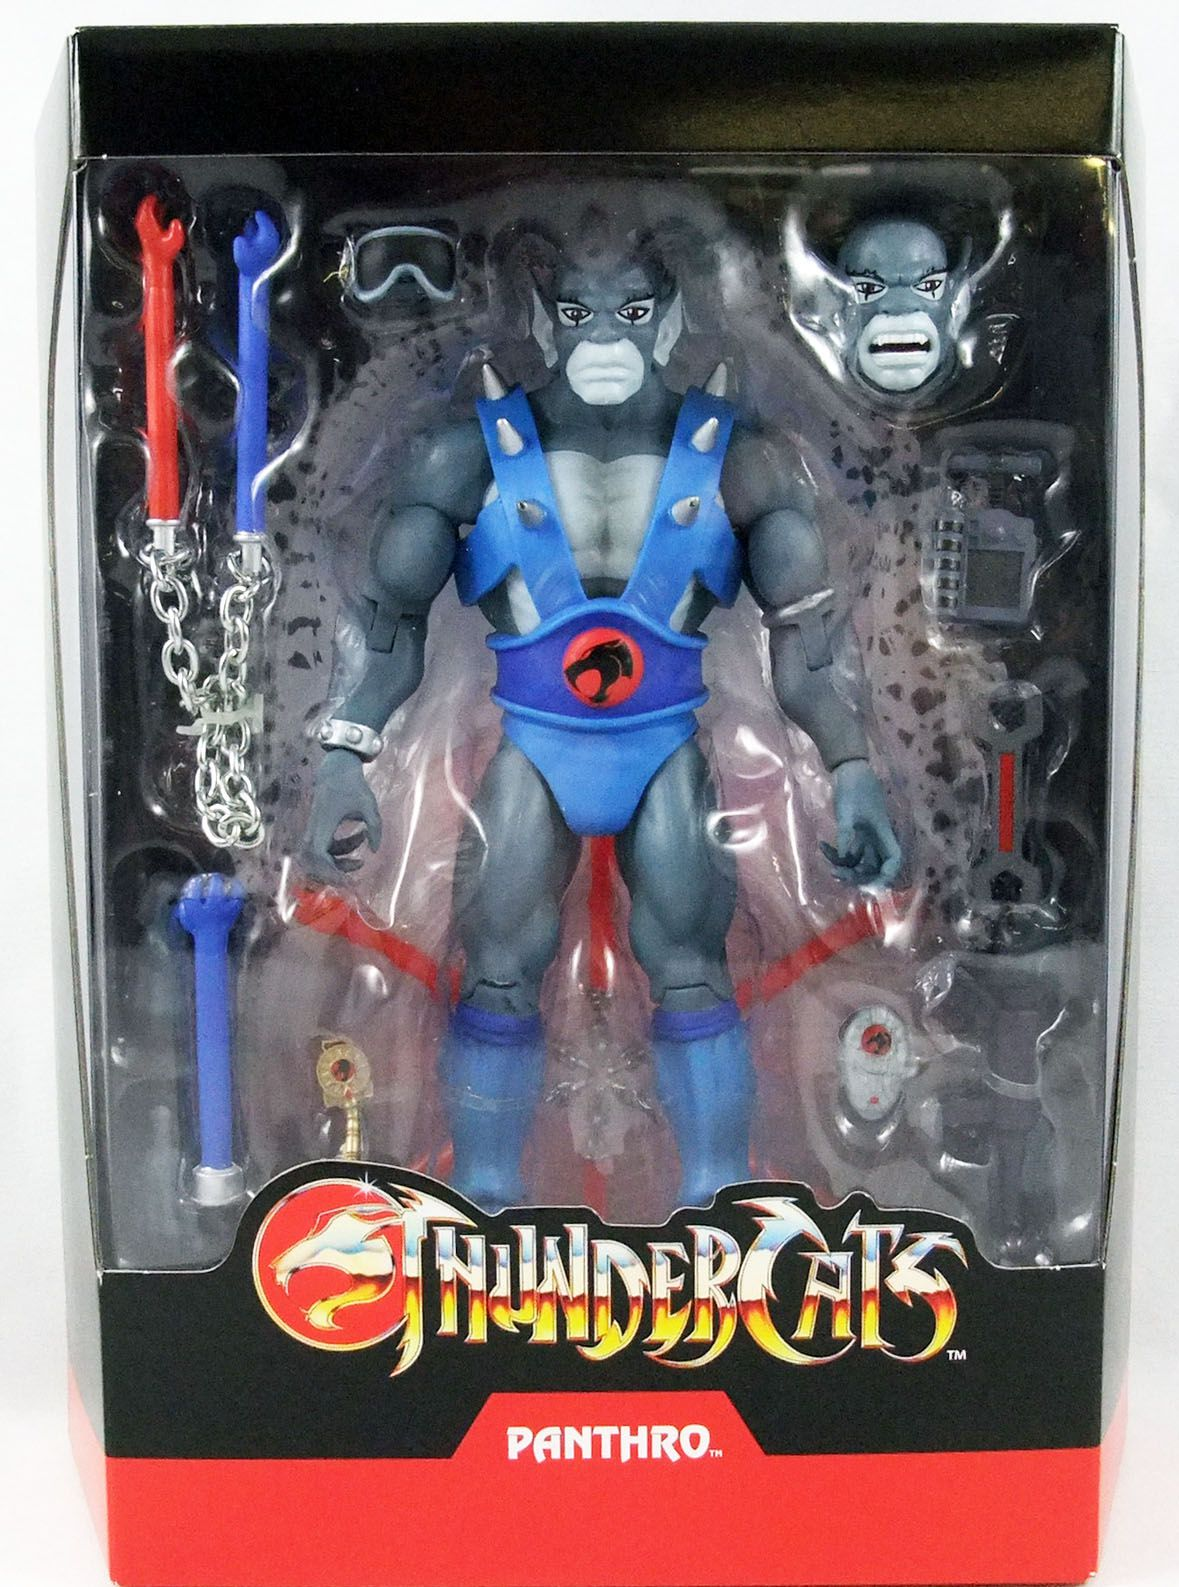 Thundercats Ultimates (Super7) - Panthro